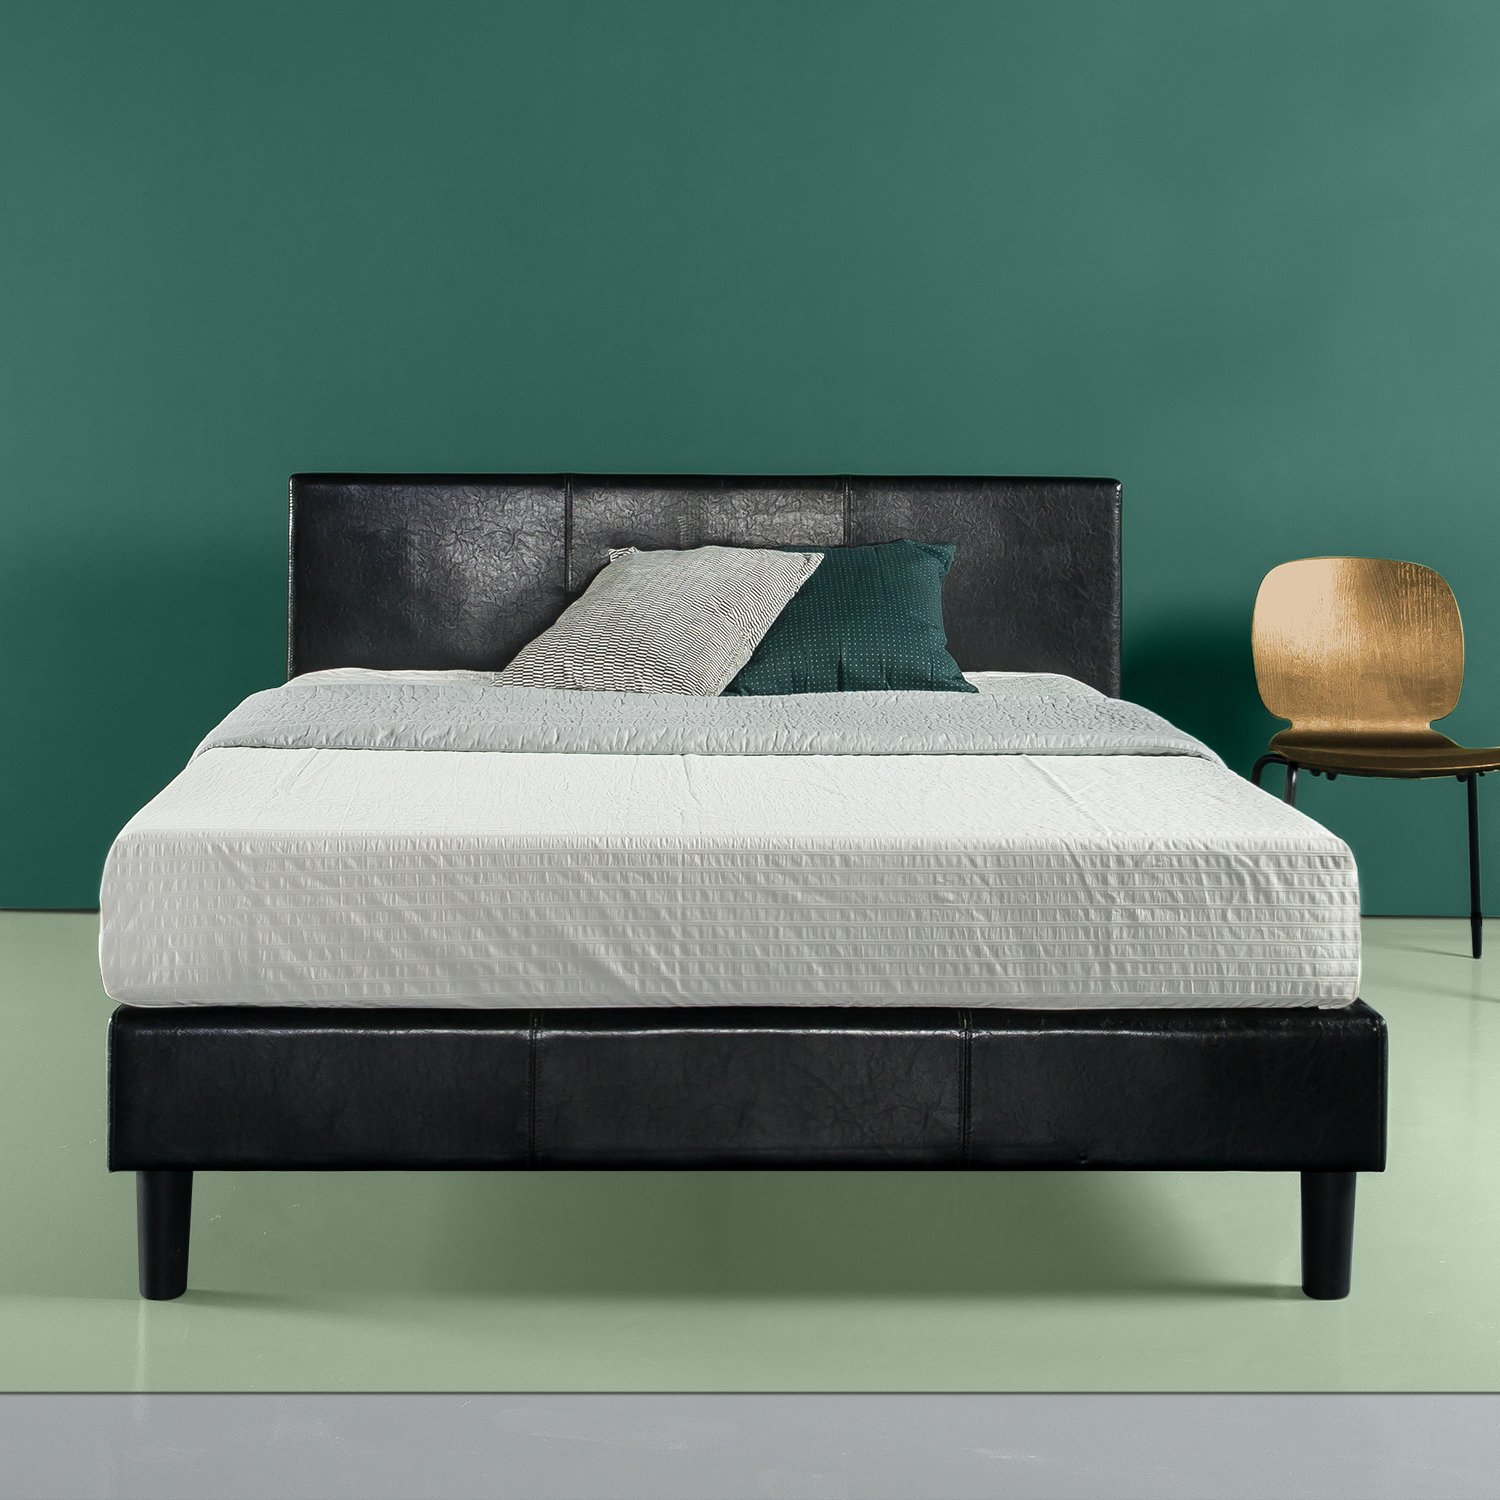 Zinus Jade Faux Leather Upholstered Platform Bed Mattress Foundation Easy Assembly Strong Wood Slat Support Black, Queen